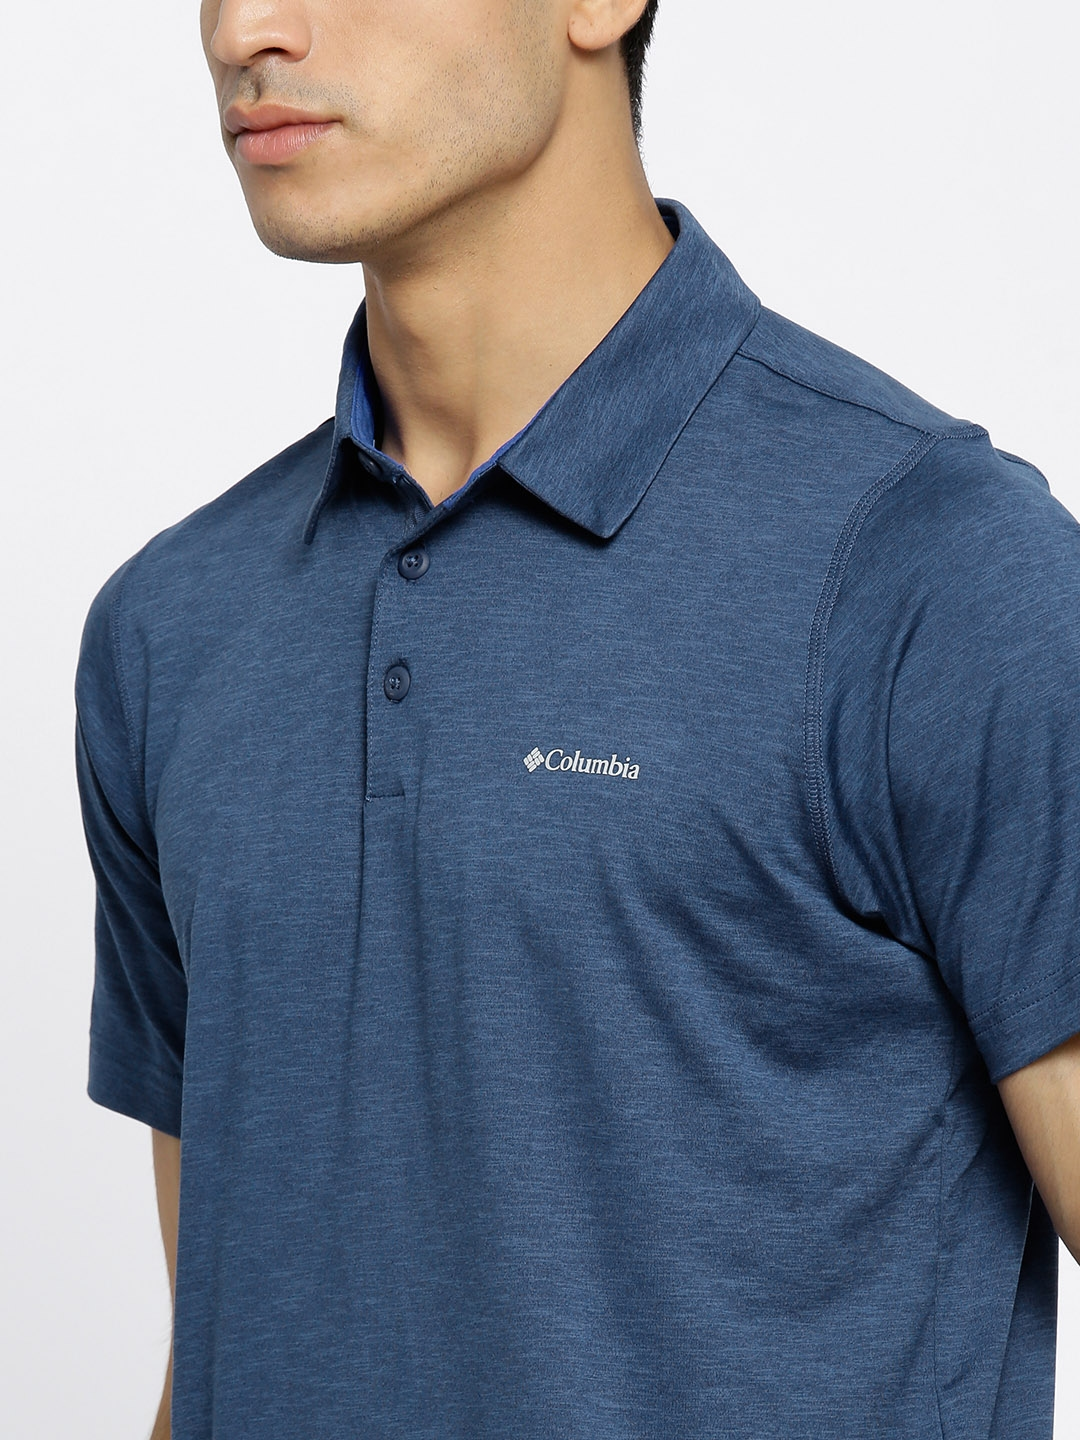 05374310d Buy Columbia Navy Tech Trail UV Protect Outdoor Polo T Shirt ...